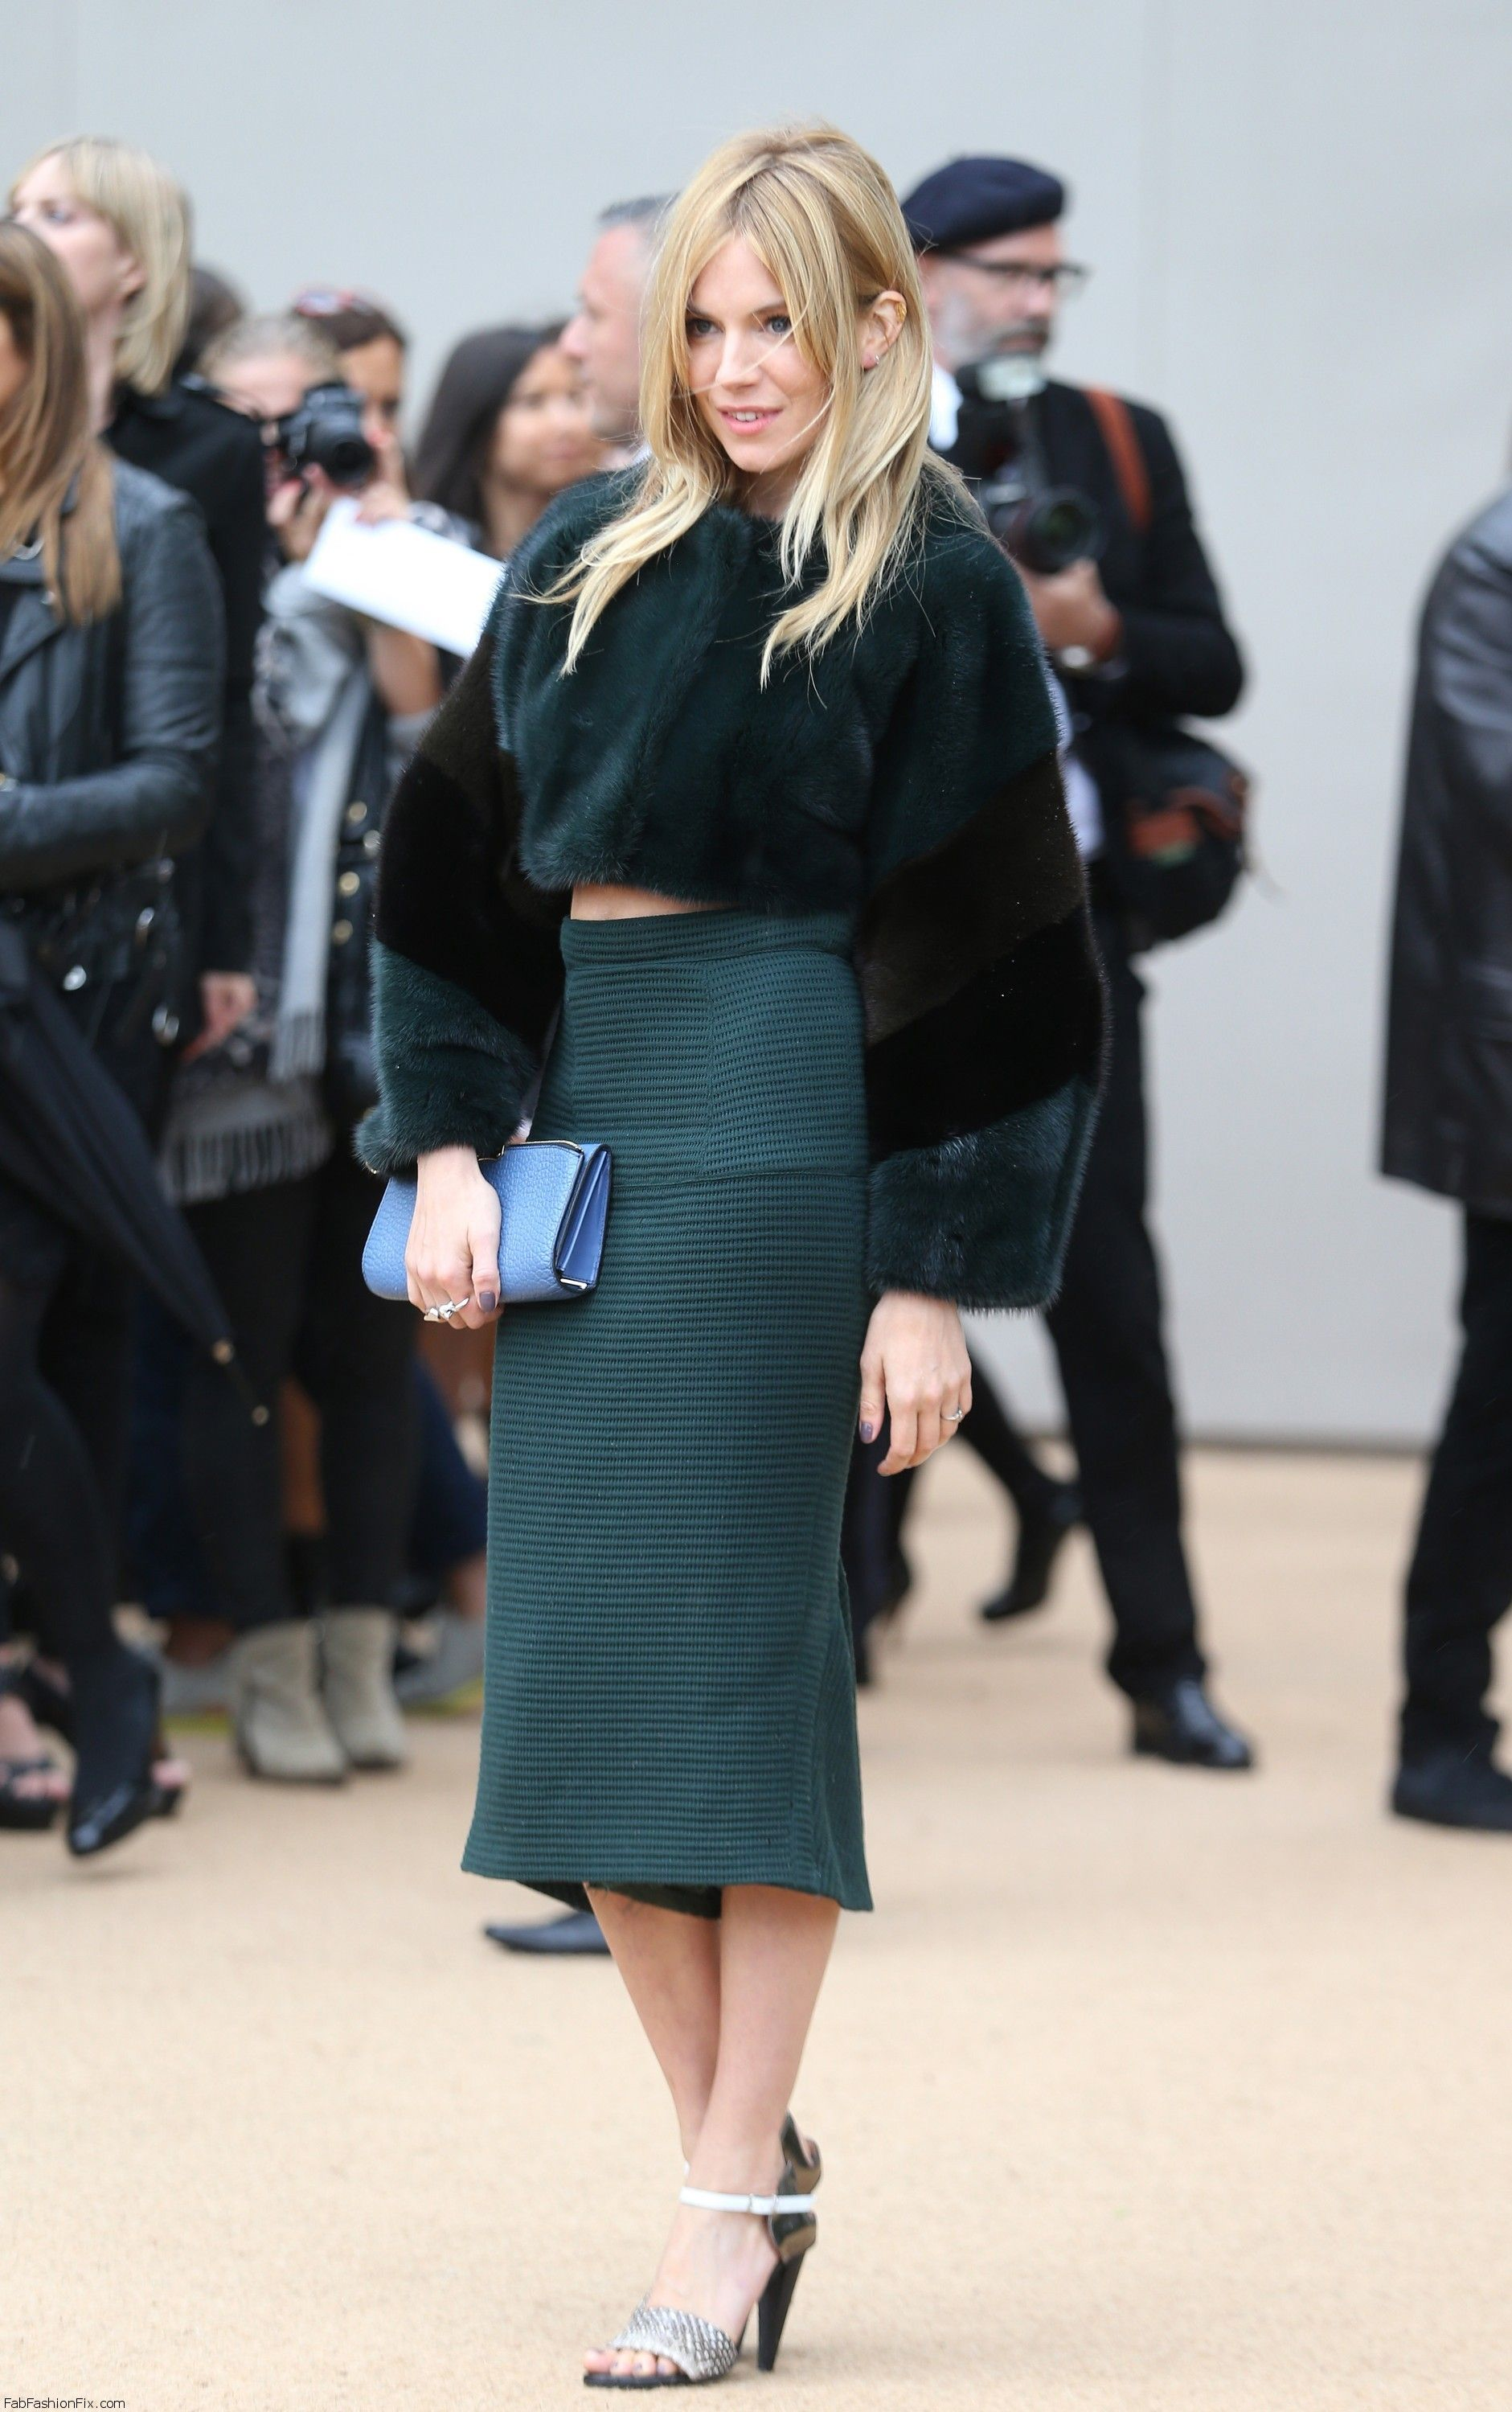 Burberry Prorsum - Red Carpet Arrivals: London Fashion Week SS14